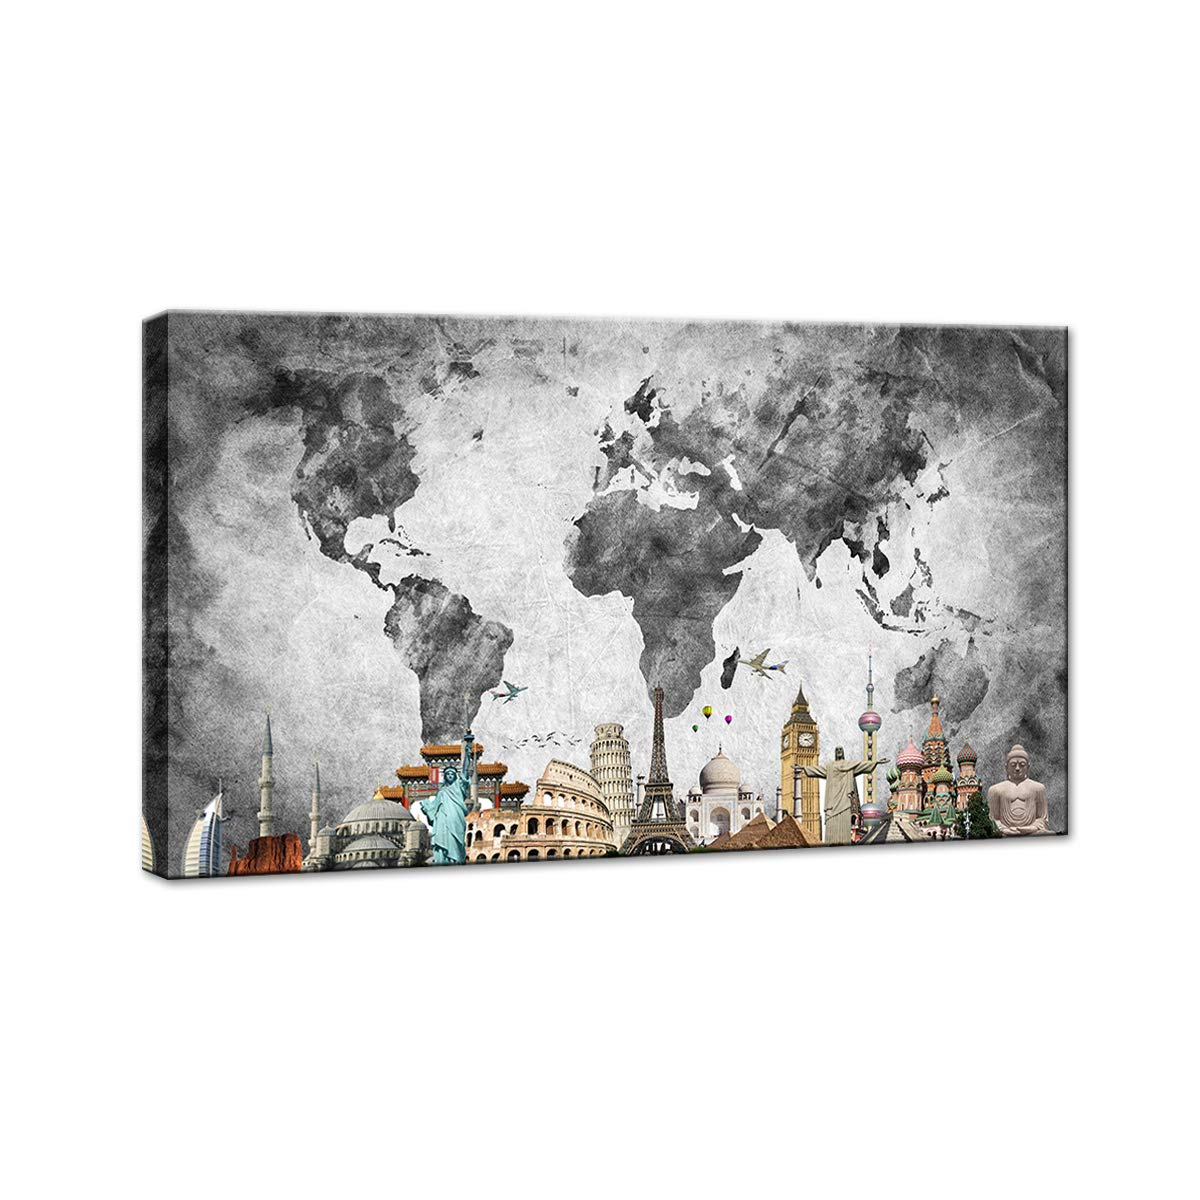 BIL-YOPIN Canvas Wall Art World Map and City 24x40in Wall Art Decor Painting Pictures Print On Canvas Long Canvas Artwork Prints for Home Living Room Bedroom Decoration Office Framed Ready to Hang